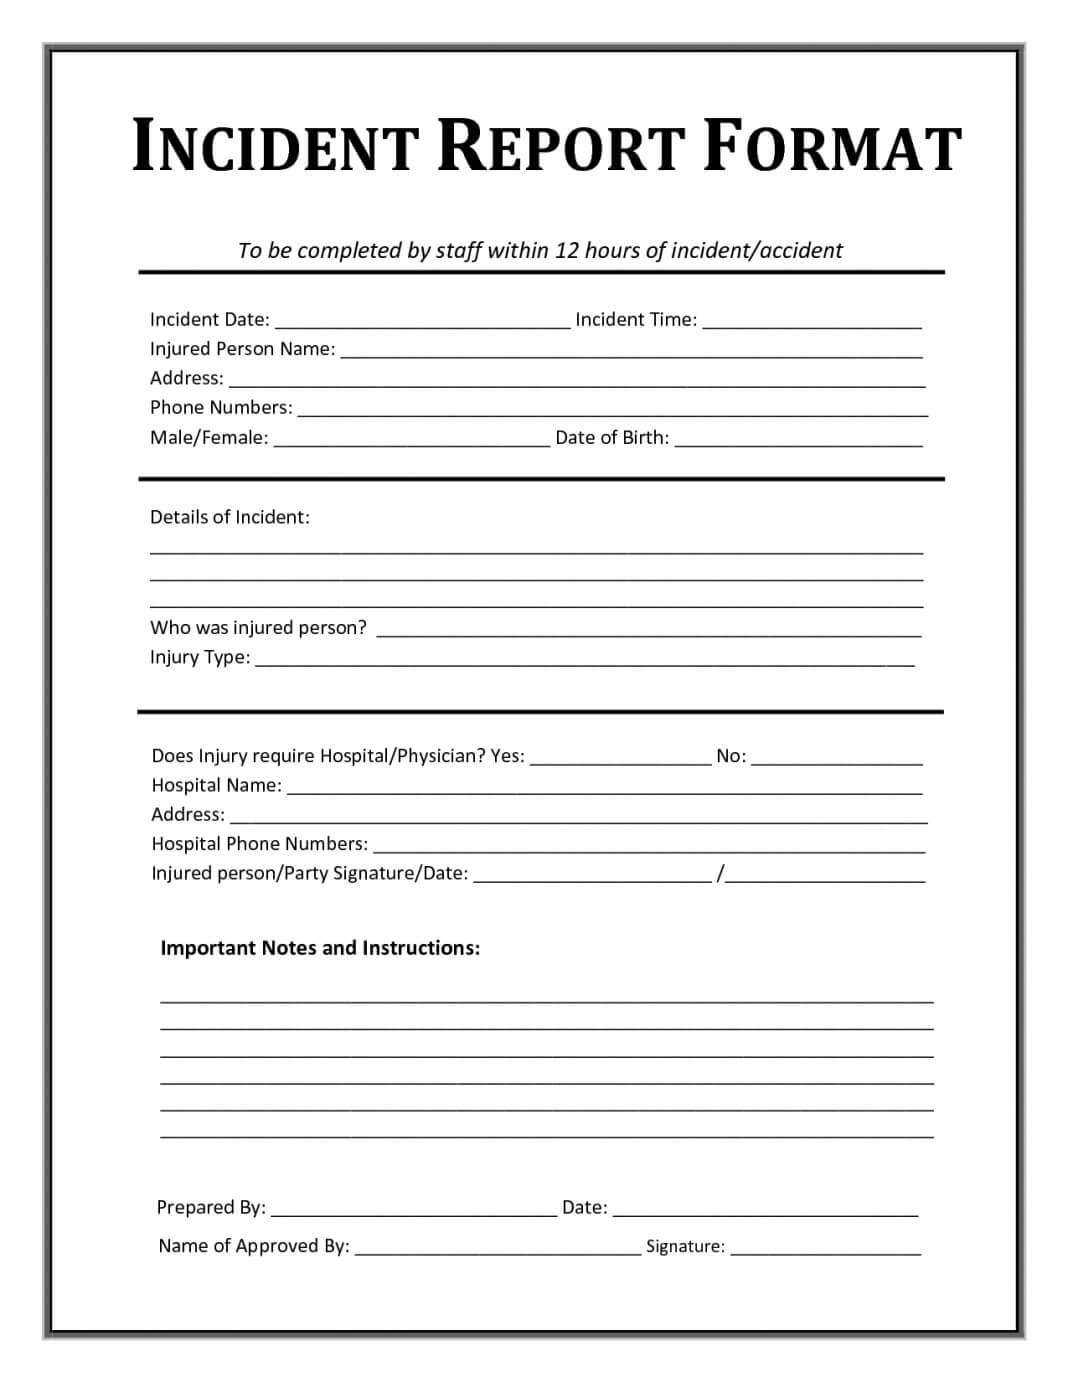 Incident Report Format Template Form Word Uk Document South Inside Incident Report Template Uk